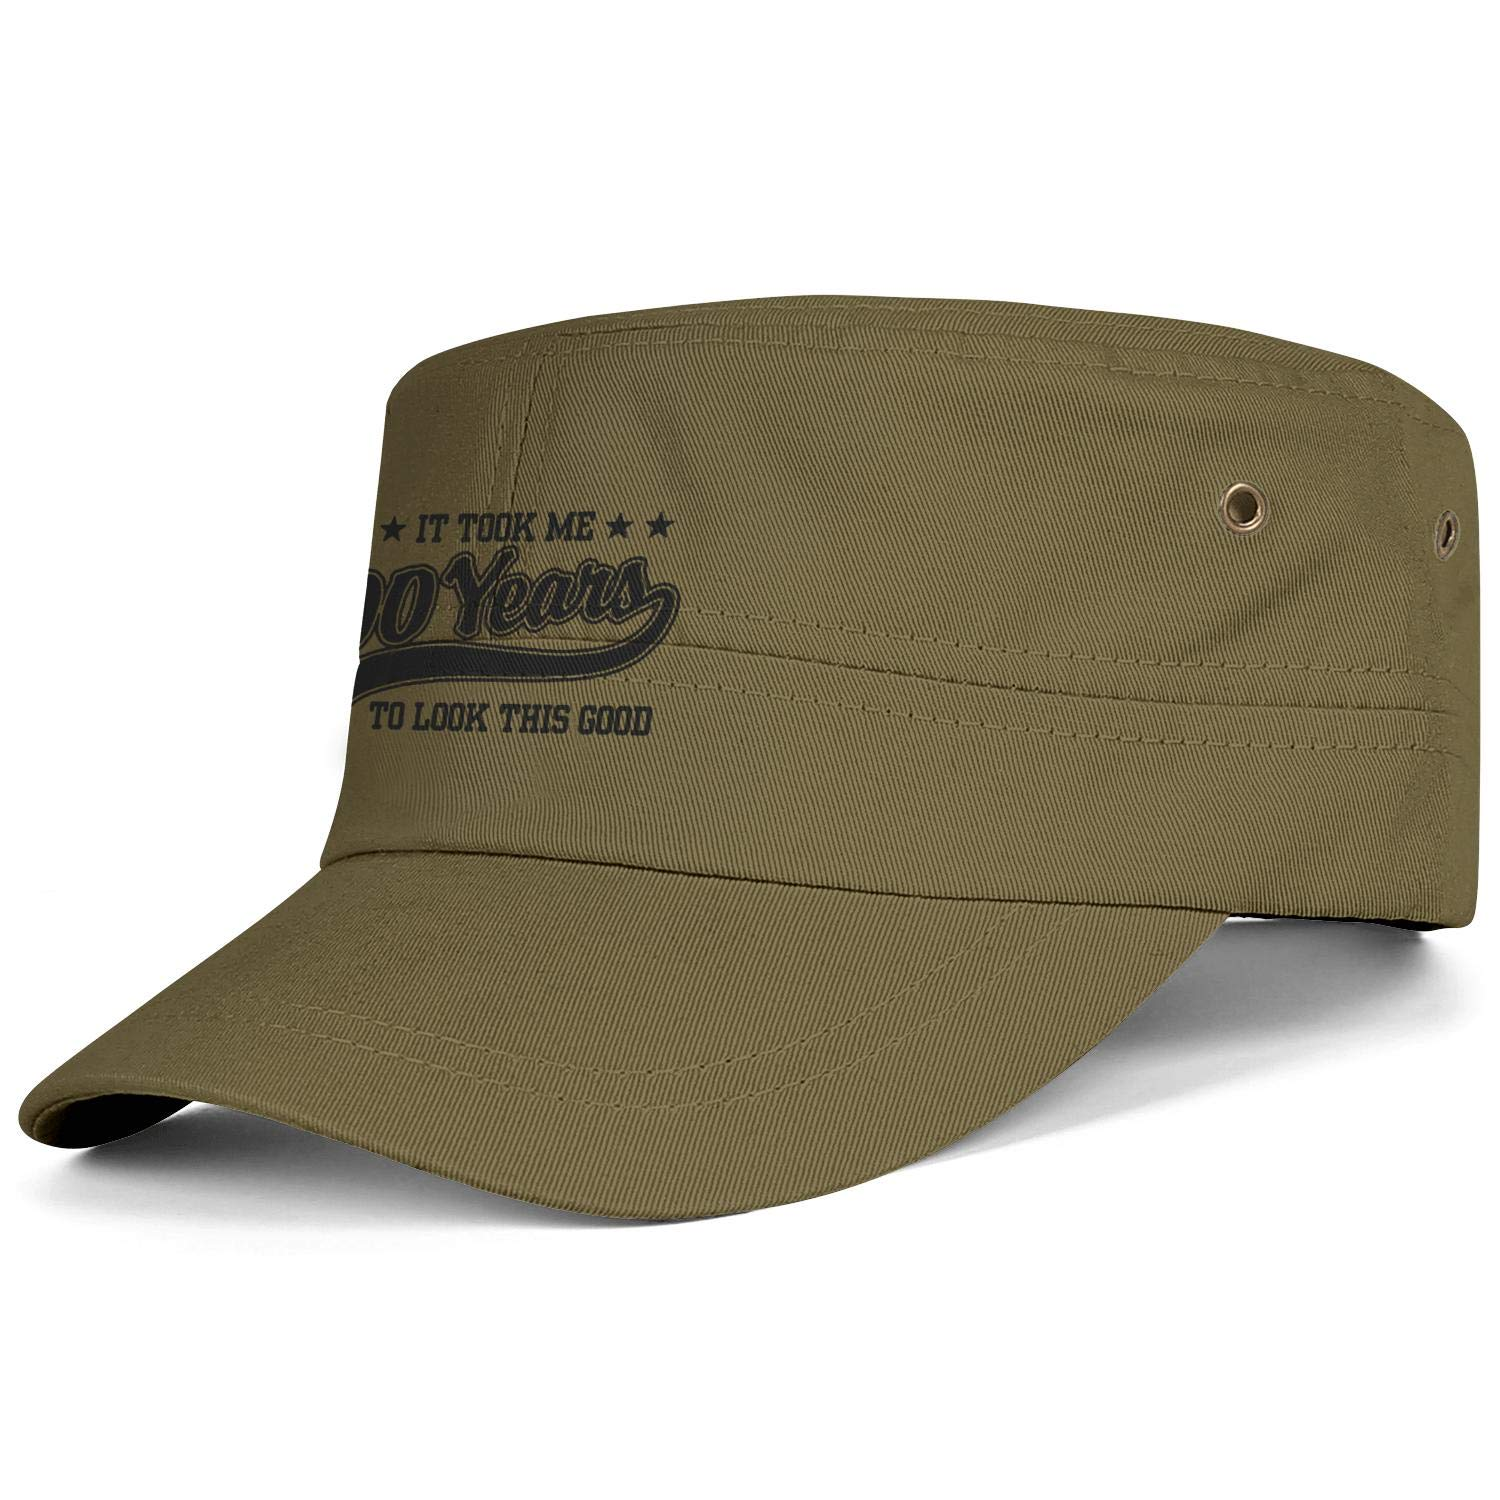 Unisex Military Hat Fuck It Vintage Flat Top Cadet Army Caps